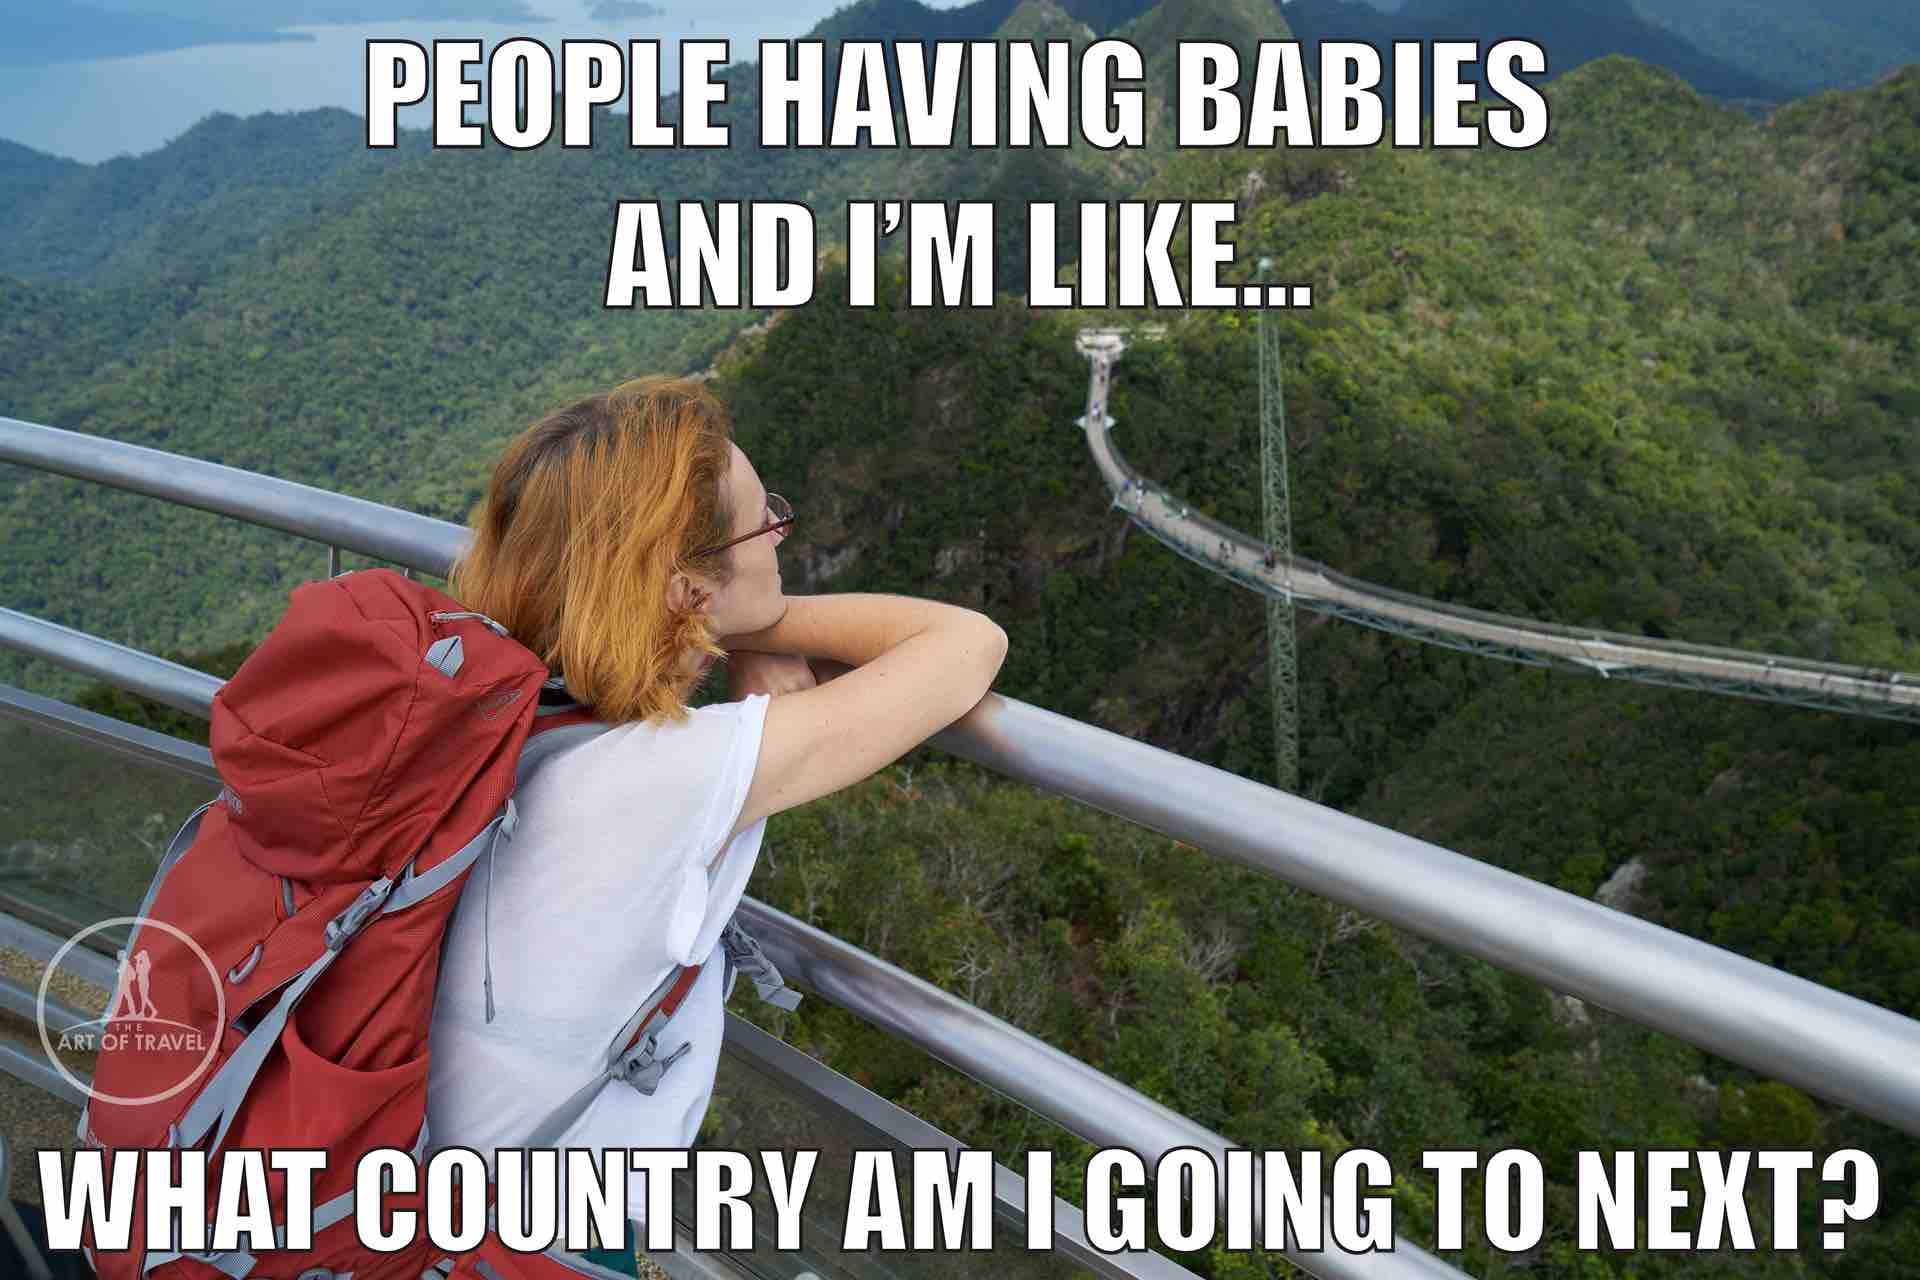 People having babies and I am like which country I am going to next_AOT